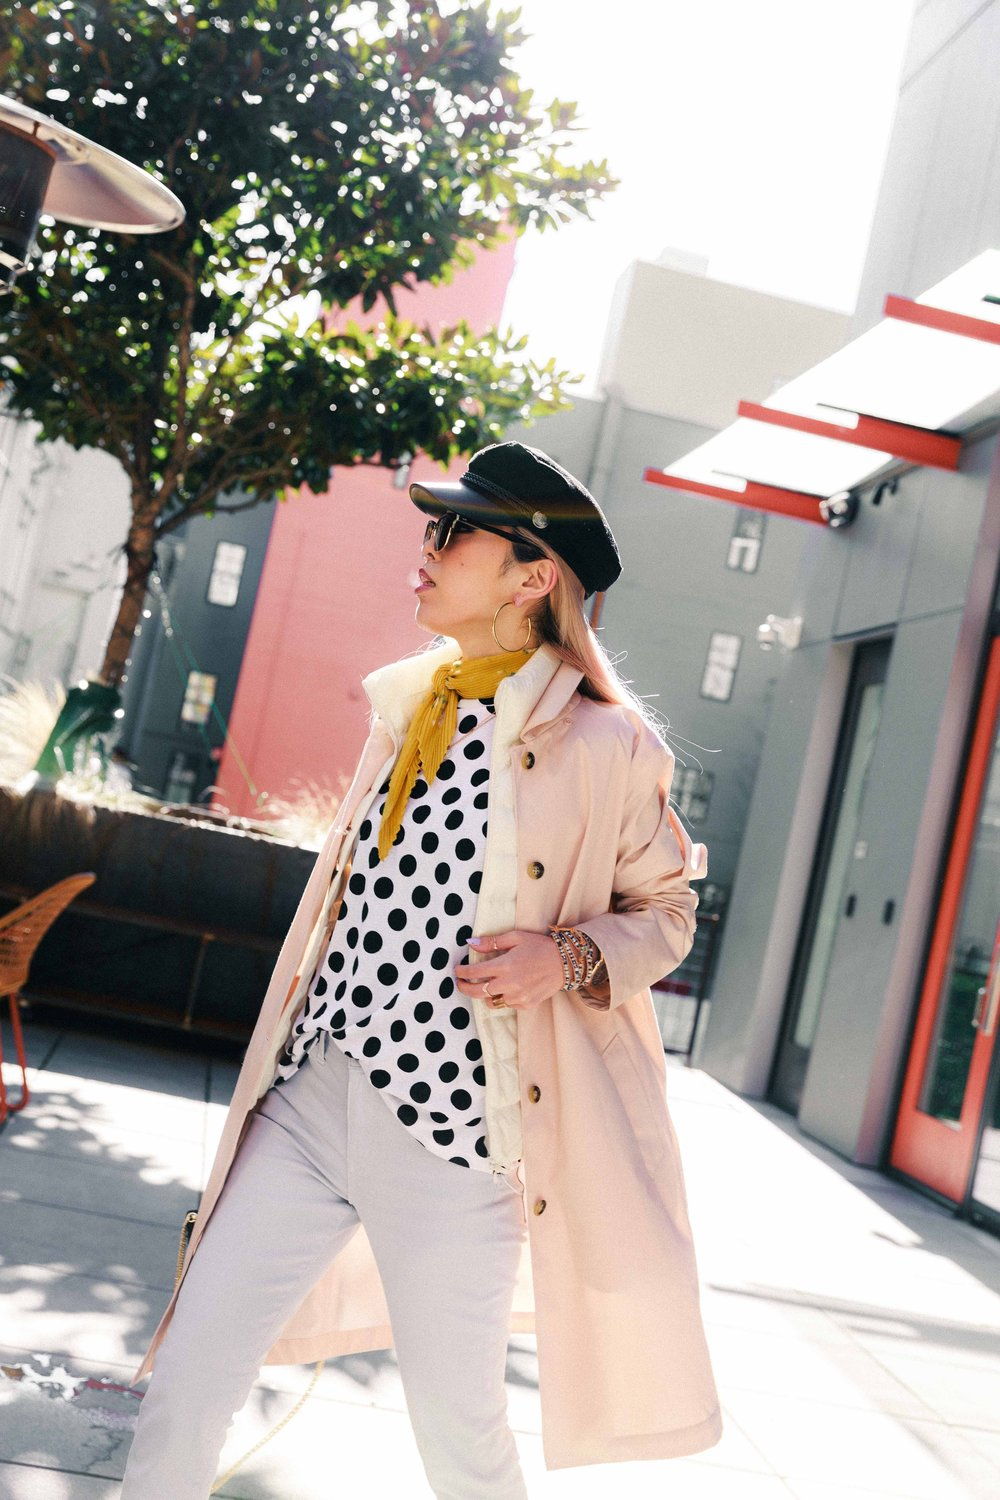 Argento Vivo Hoop Earrings-Uniqlo WOMEN ULTRA LIGHT DOWN VEST-Uniqlo BLOCKTECH SOUTIEN COLLAR COAT-Yellow Floral Scarf-H&M Captain's Cap-Zara Polka dot Top-Zara MINAUDIÈRE BAG WITH BRAIDED HANDLE-Swarovski CRYSTAL WISHES HEART PENDANT SET, RED, MIXED PLATING-Ollie Quinn Sunglasses-ADEXE Watch-Uniqlo WOMEN HIGH RISE CIGARETTE JEANS-ALDO Satin Ankle Boots-AikA's Love Closet-Seattle Style Blogger-Japanese-pink hair-petite fashion 12